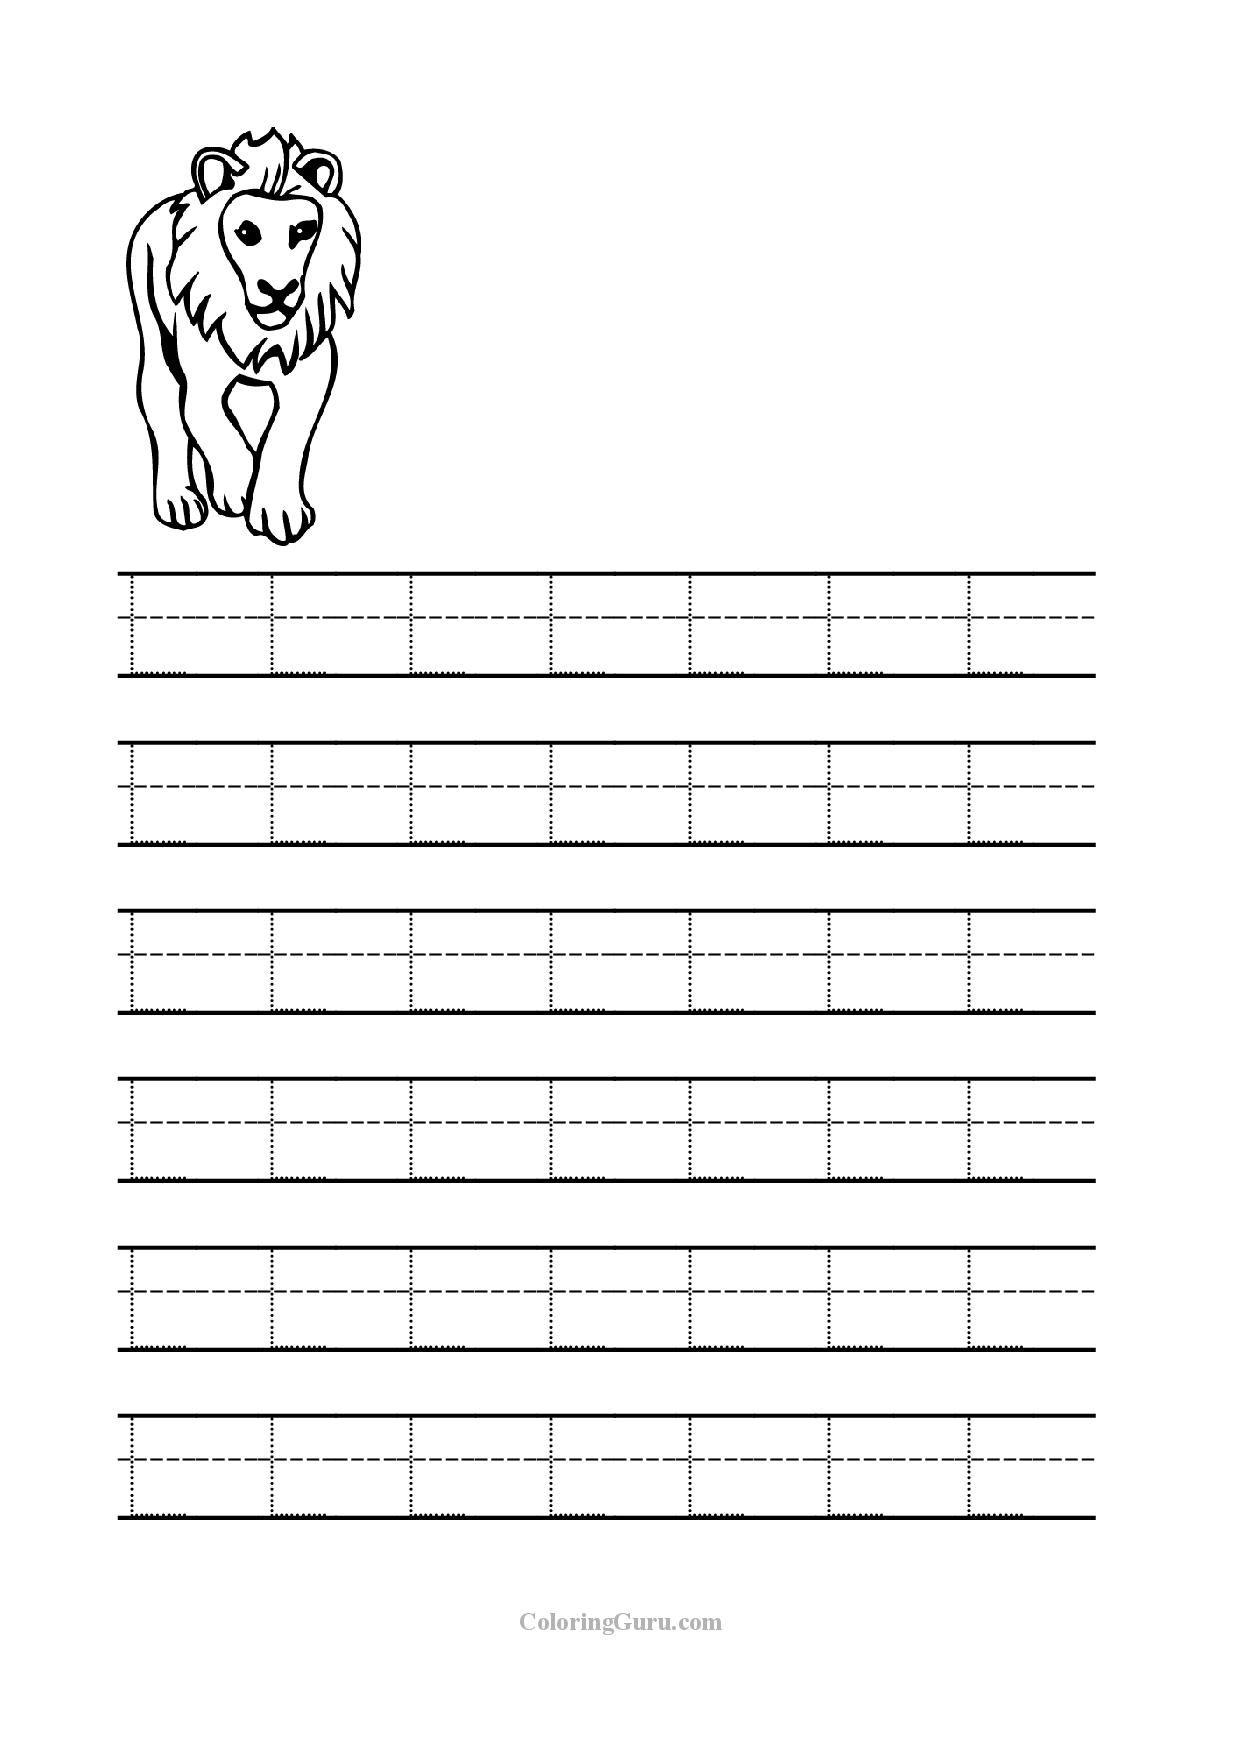 Tracing Letter L Worksheets For Kindergarten